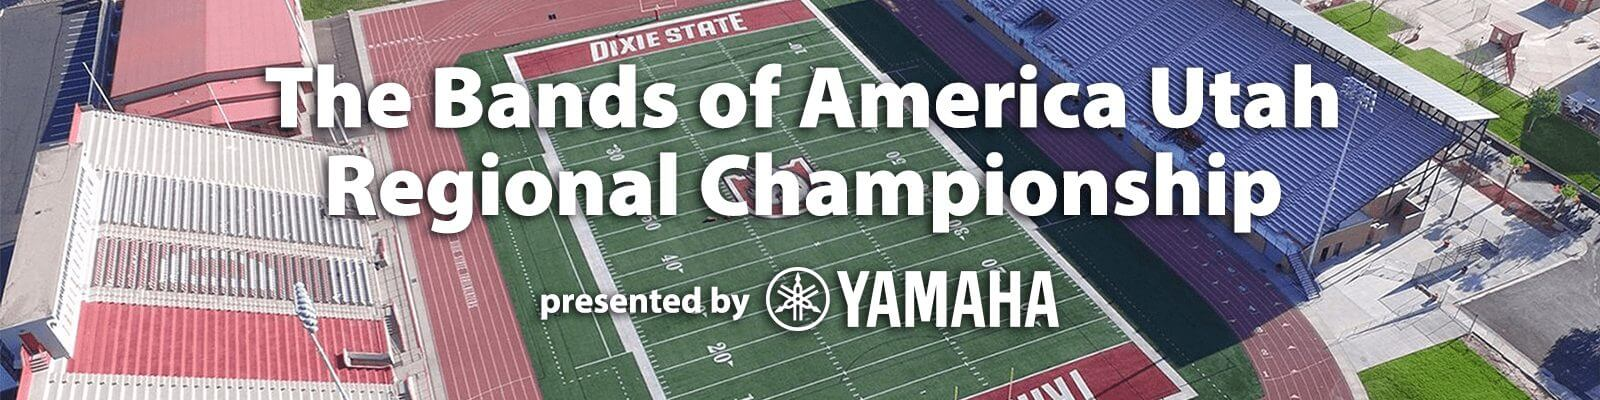 Poster: The Bands of America Utah Regional Championship presented by Yamaha